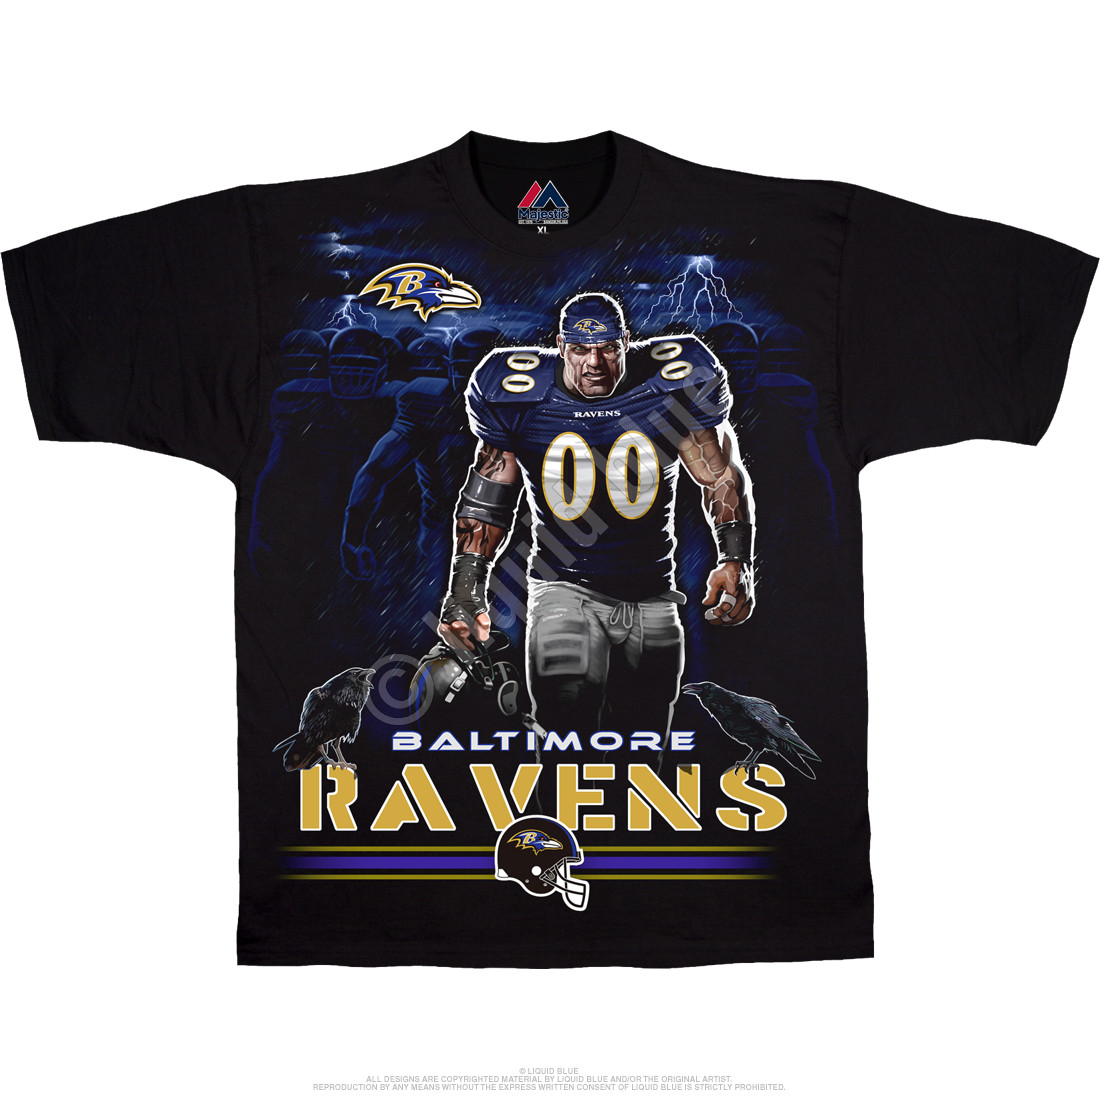 Baltimore Ravens Tunnel Black T-Shirt